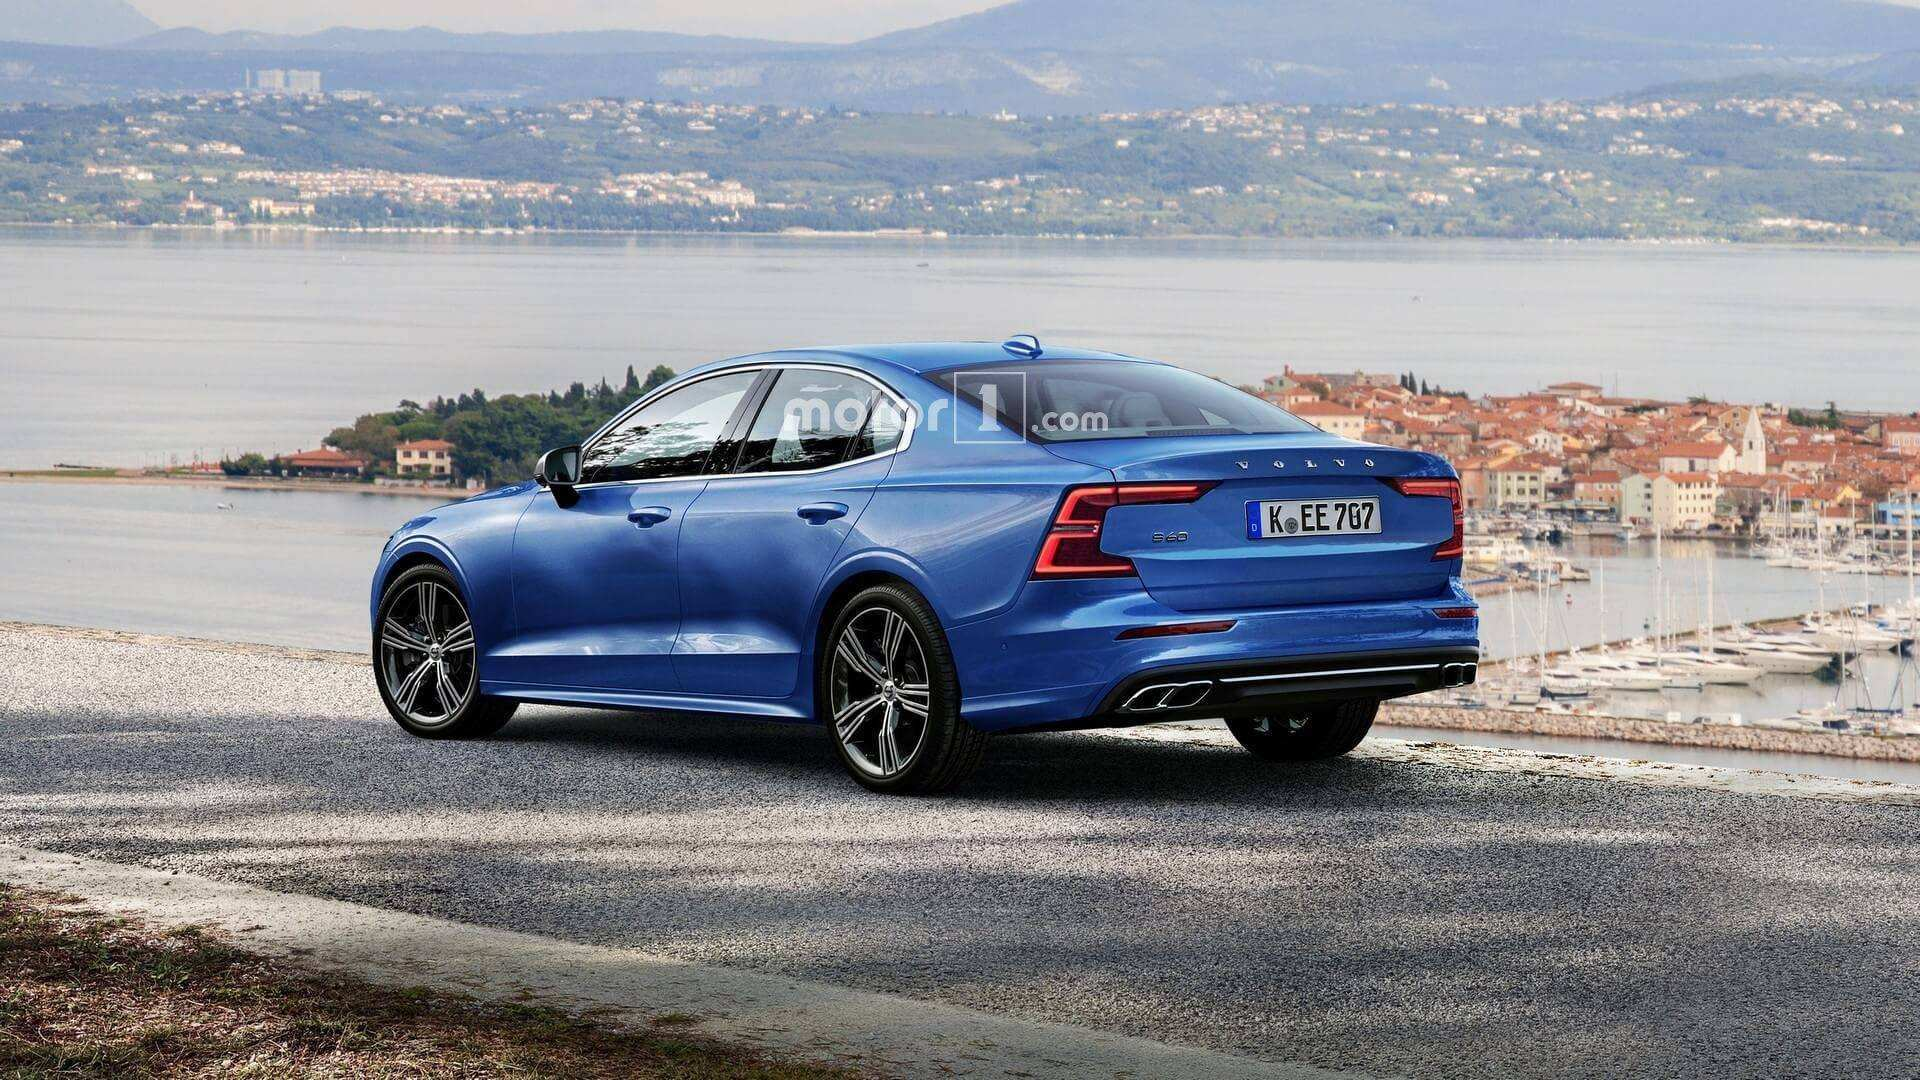 52 Best Review Volvo S60 2019 New Concept by Volvo S60 2019